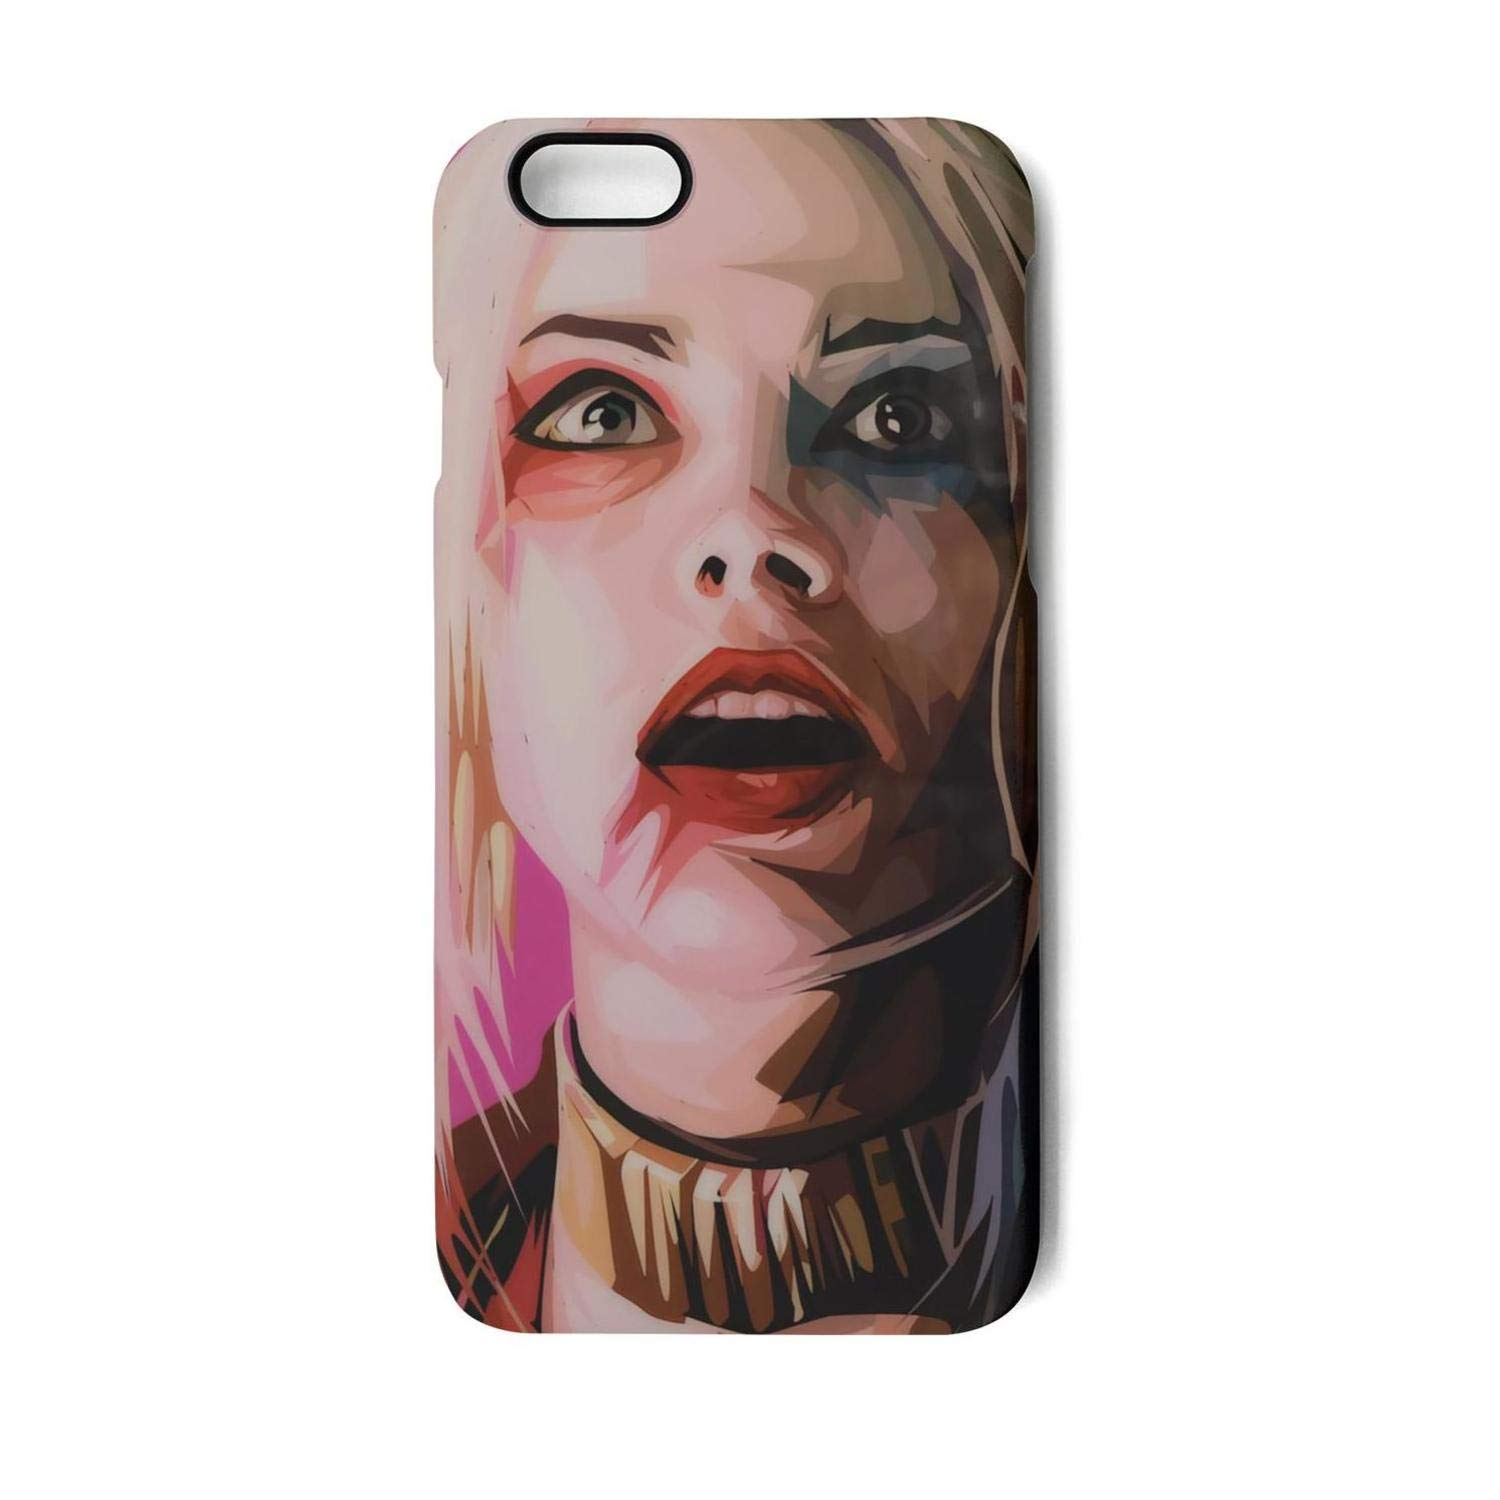 Amazoncom Iphone 6 Plus Case Suicide Squad Harley Quinn